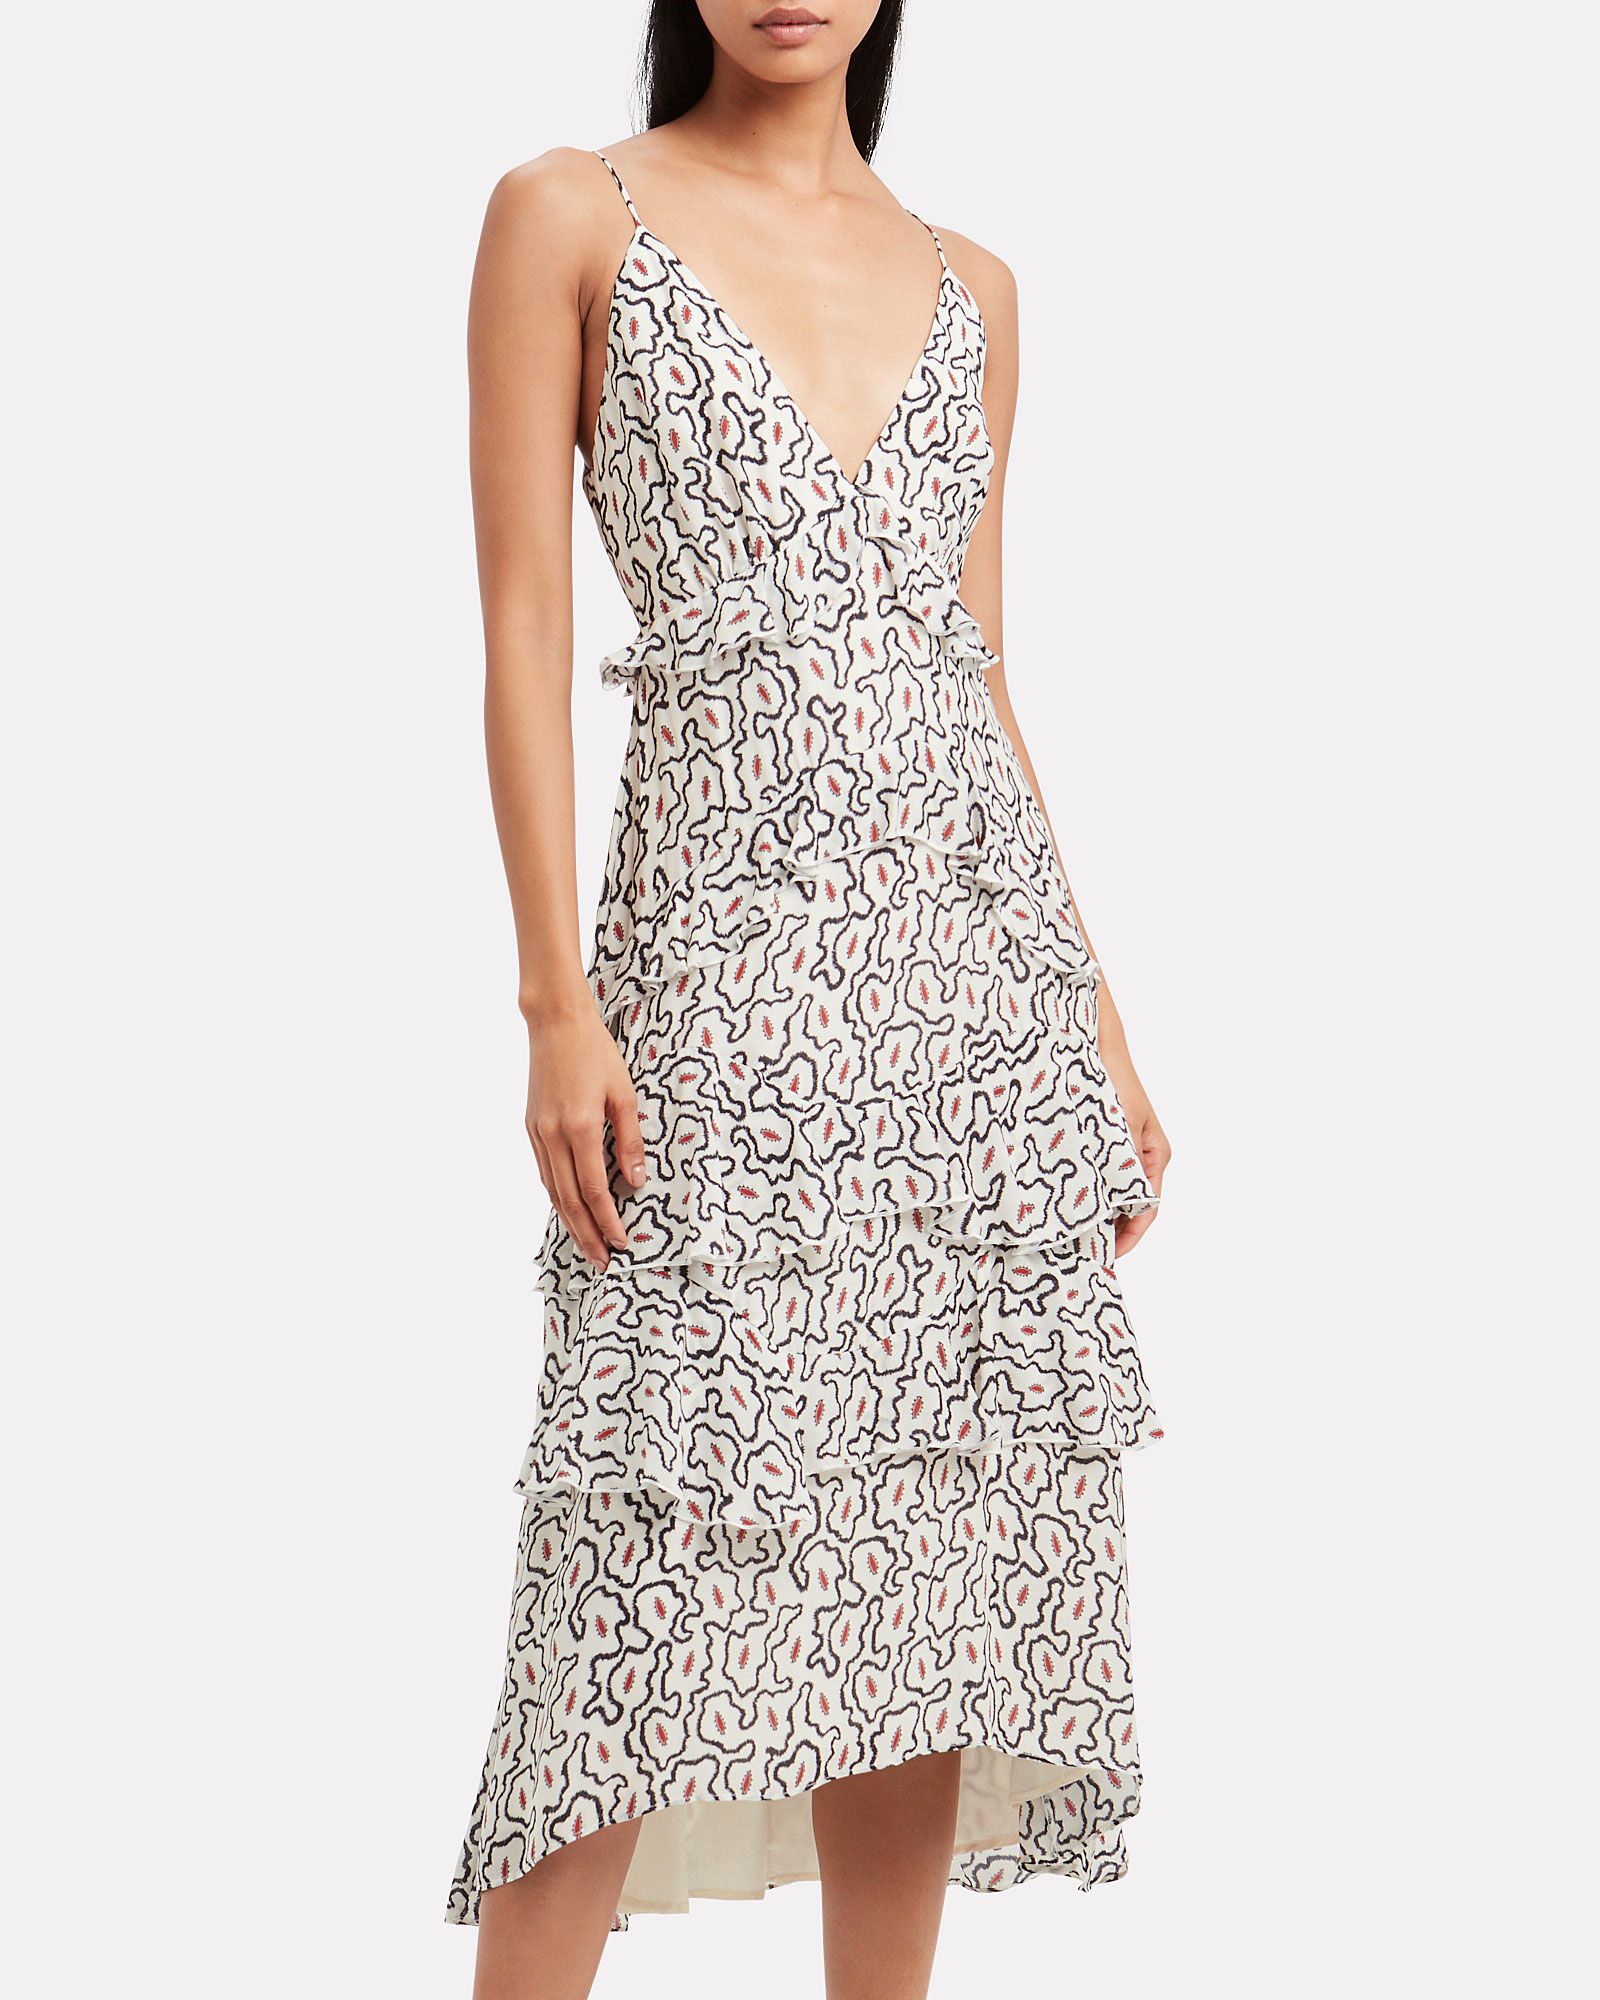 Euphony Ziggy Print Dress, IVORY/BLACK ABSTRACT PRINT, hi-res